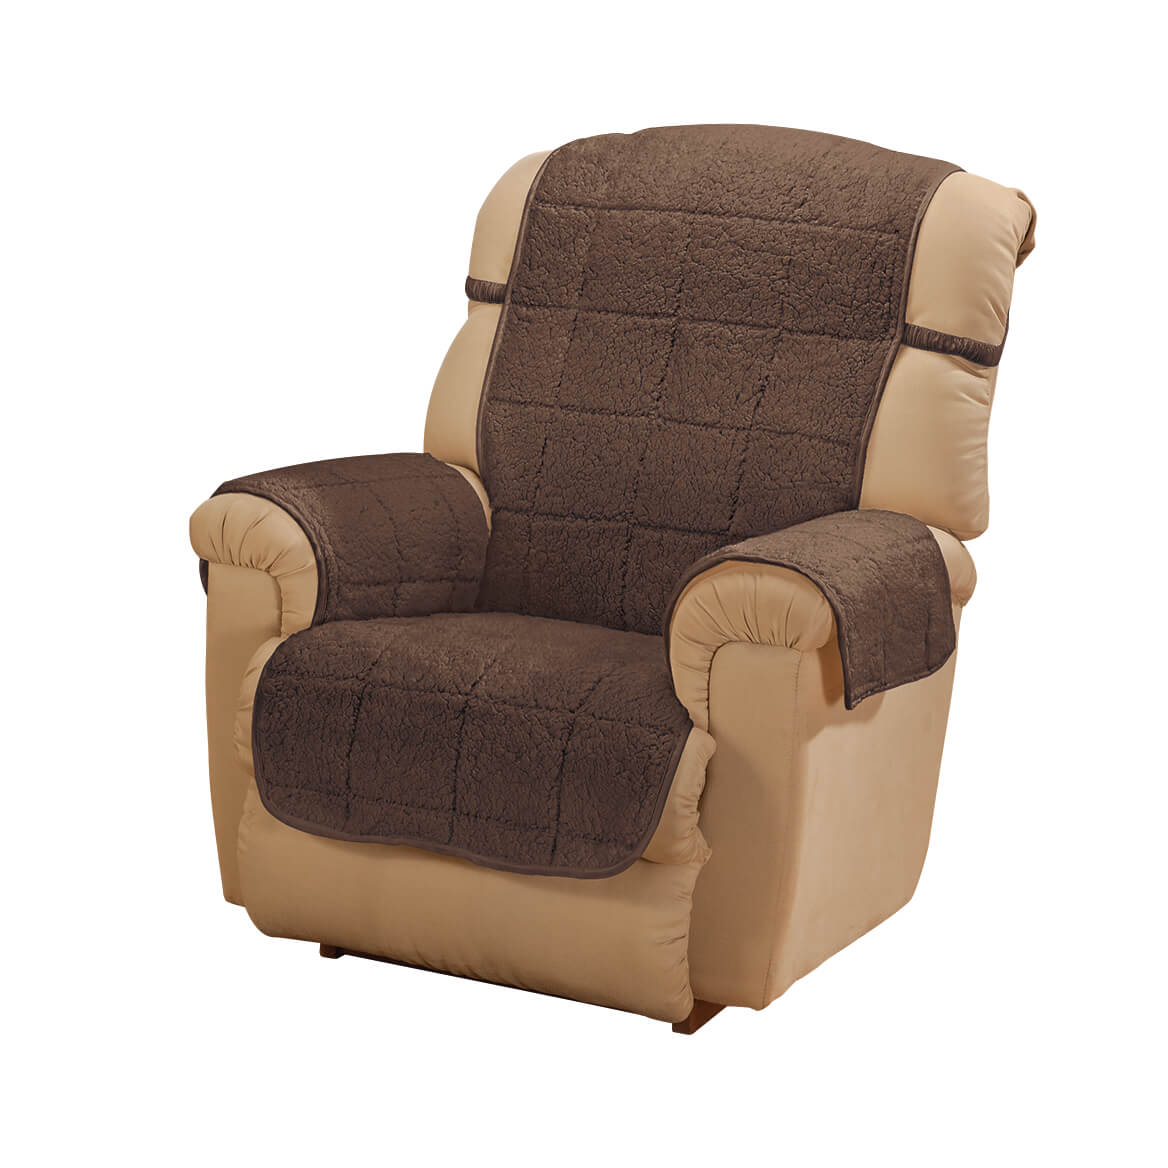 """Parker Sherpa Recliner Cover by OakRidge, Camel Water Resistant Polyester – 48"""" x 23"""" Back Cover & 30.5"""" x 23"""" Seat Cover & 2 Arm Covers of 21"""" x 16"""", Machine Washable"""